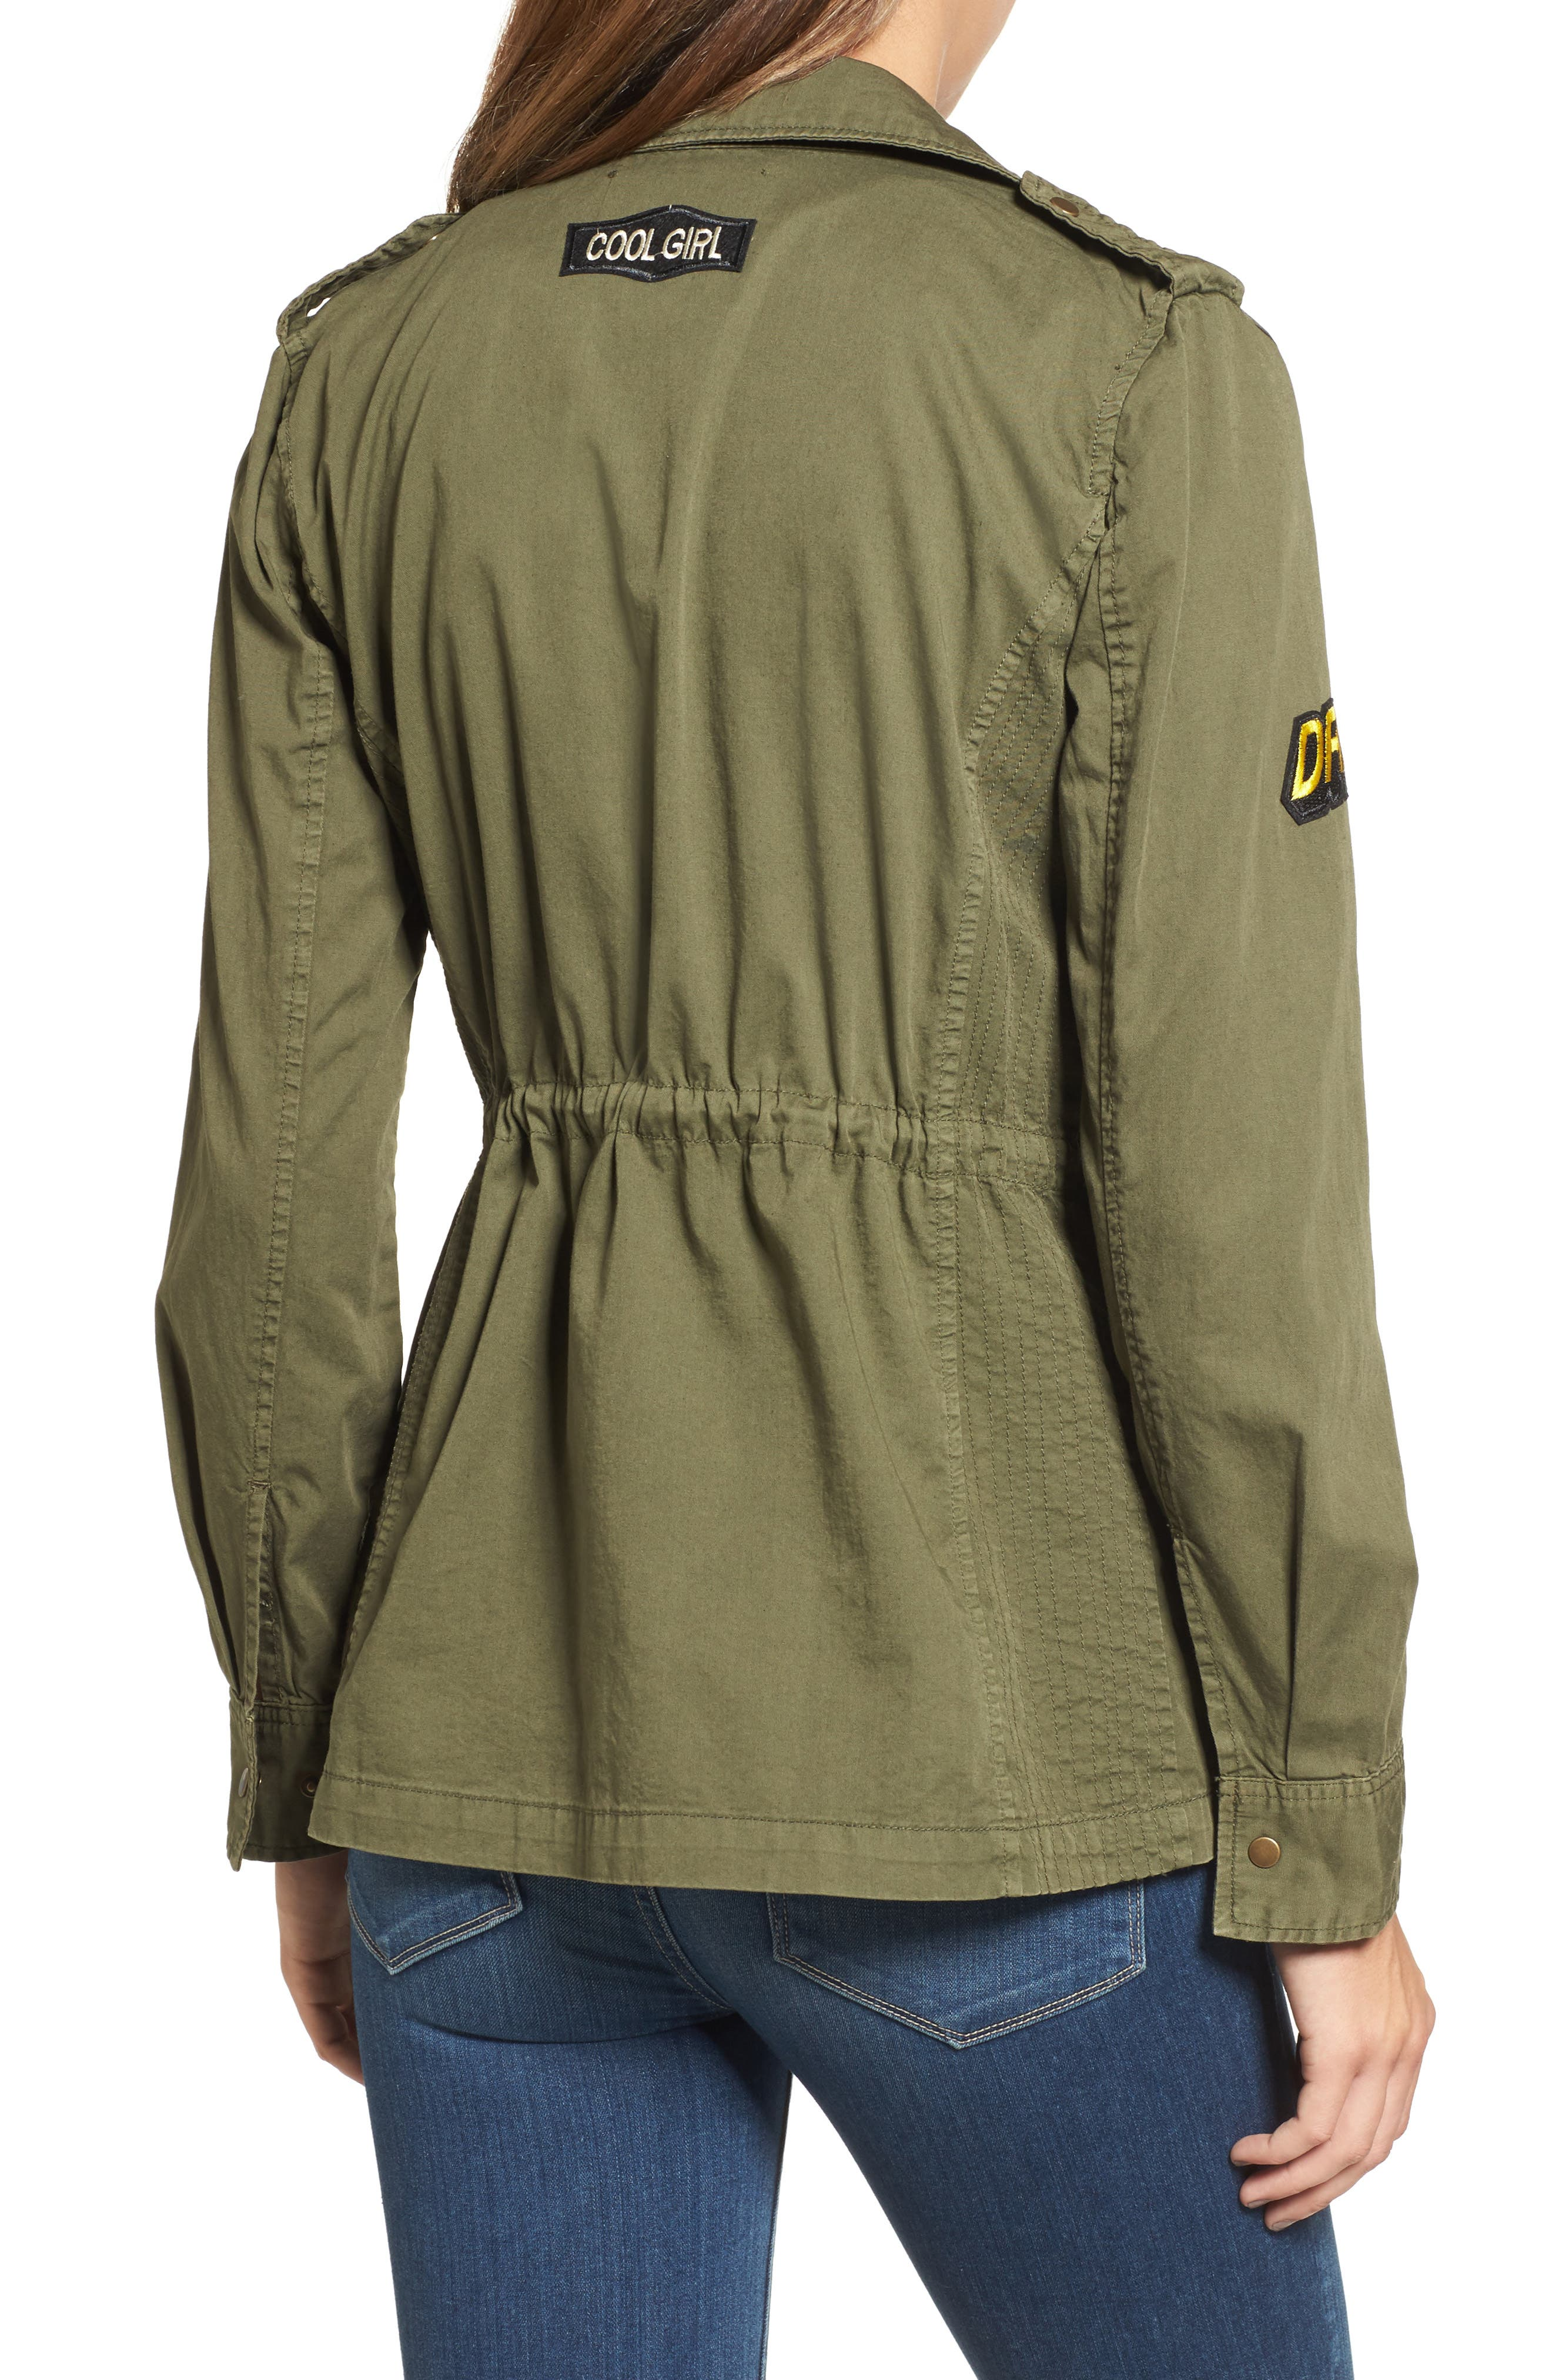 Patched Army Jacket,                             Alternate thumbnail 2, color,                             Forest Green